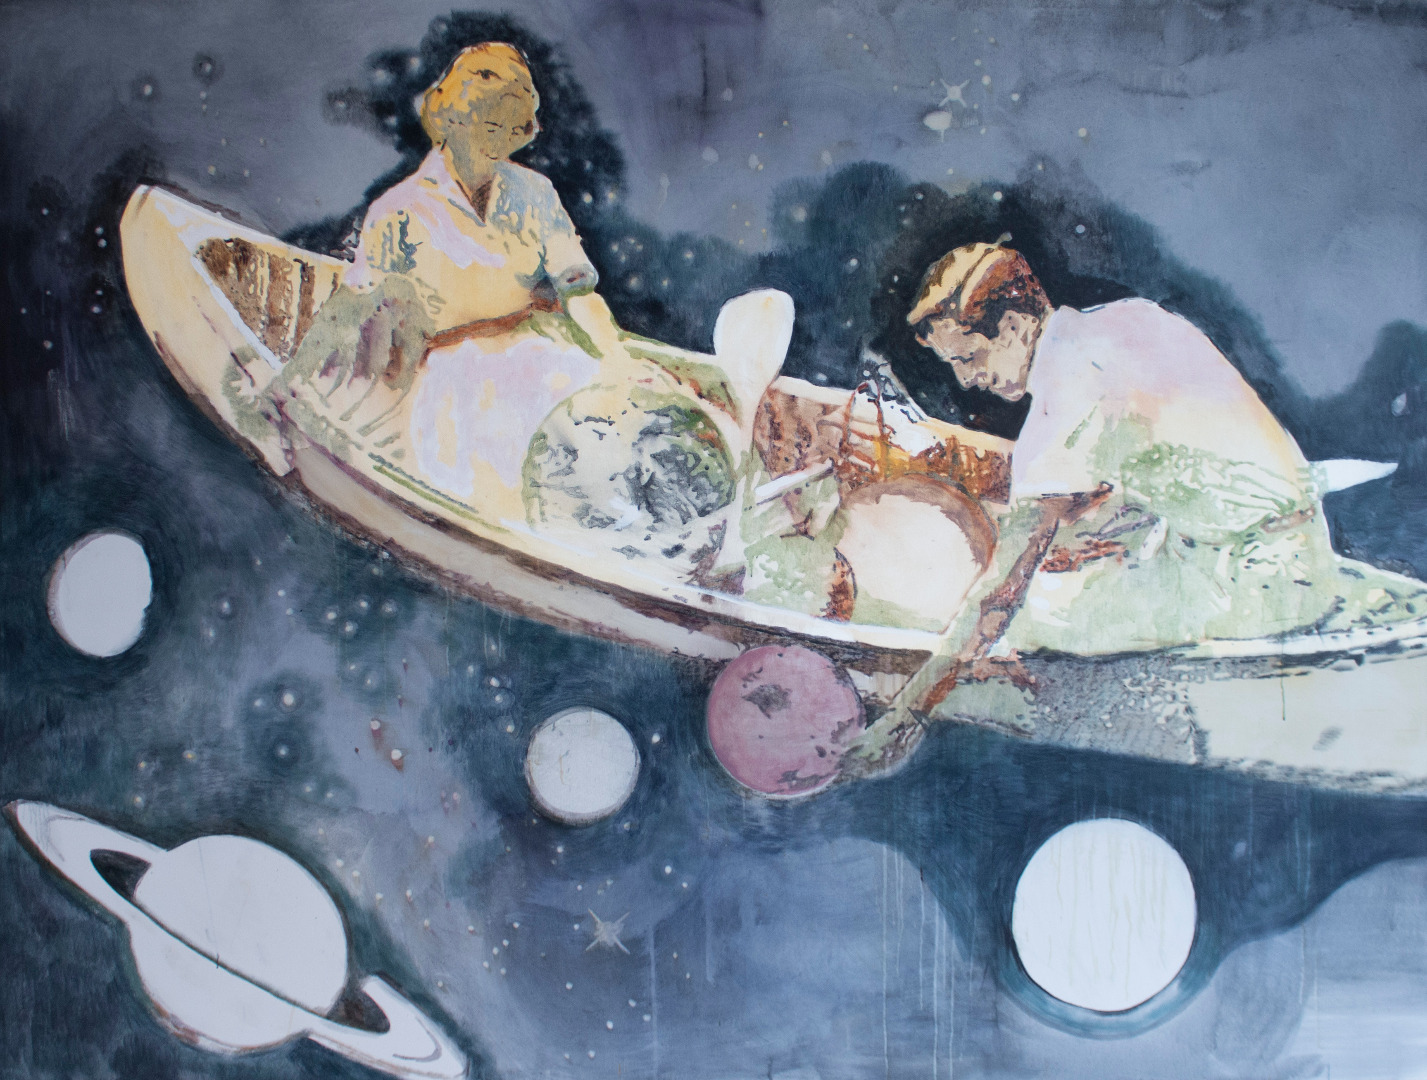 Miriam Vlaming, Into the Universe, 2021, Eitempera auf Leinwand, 180 x 240 cm © und Foto: the artist